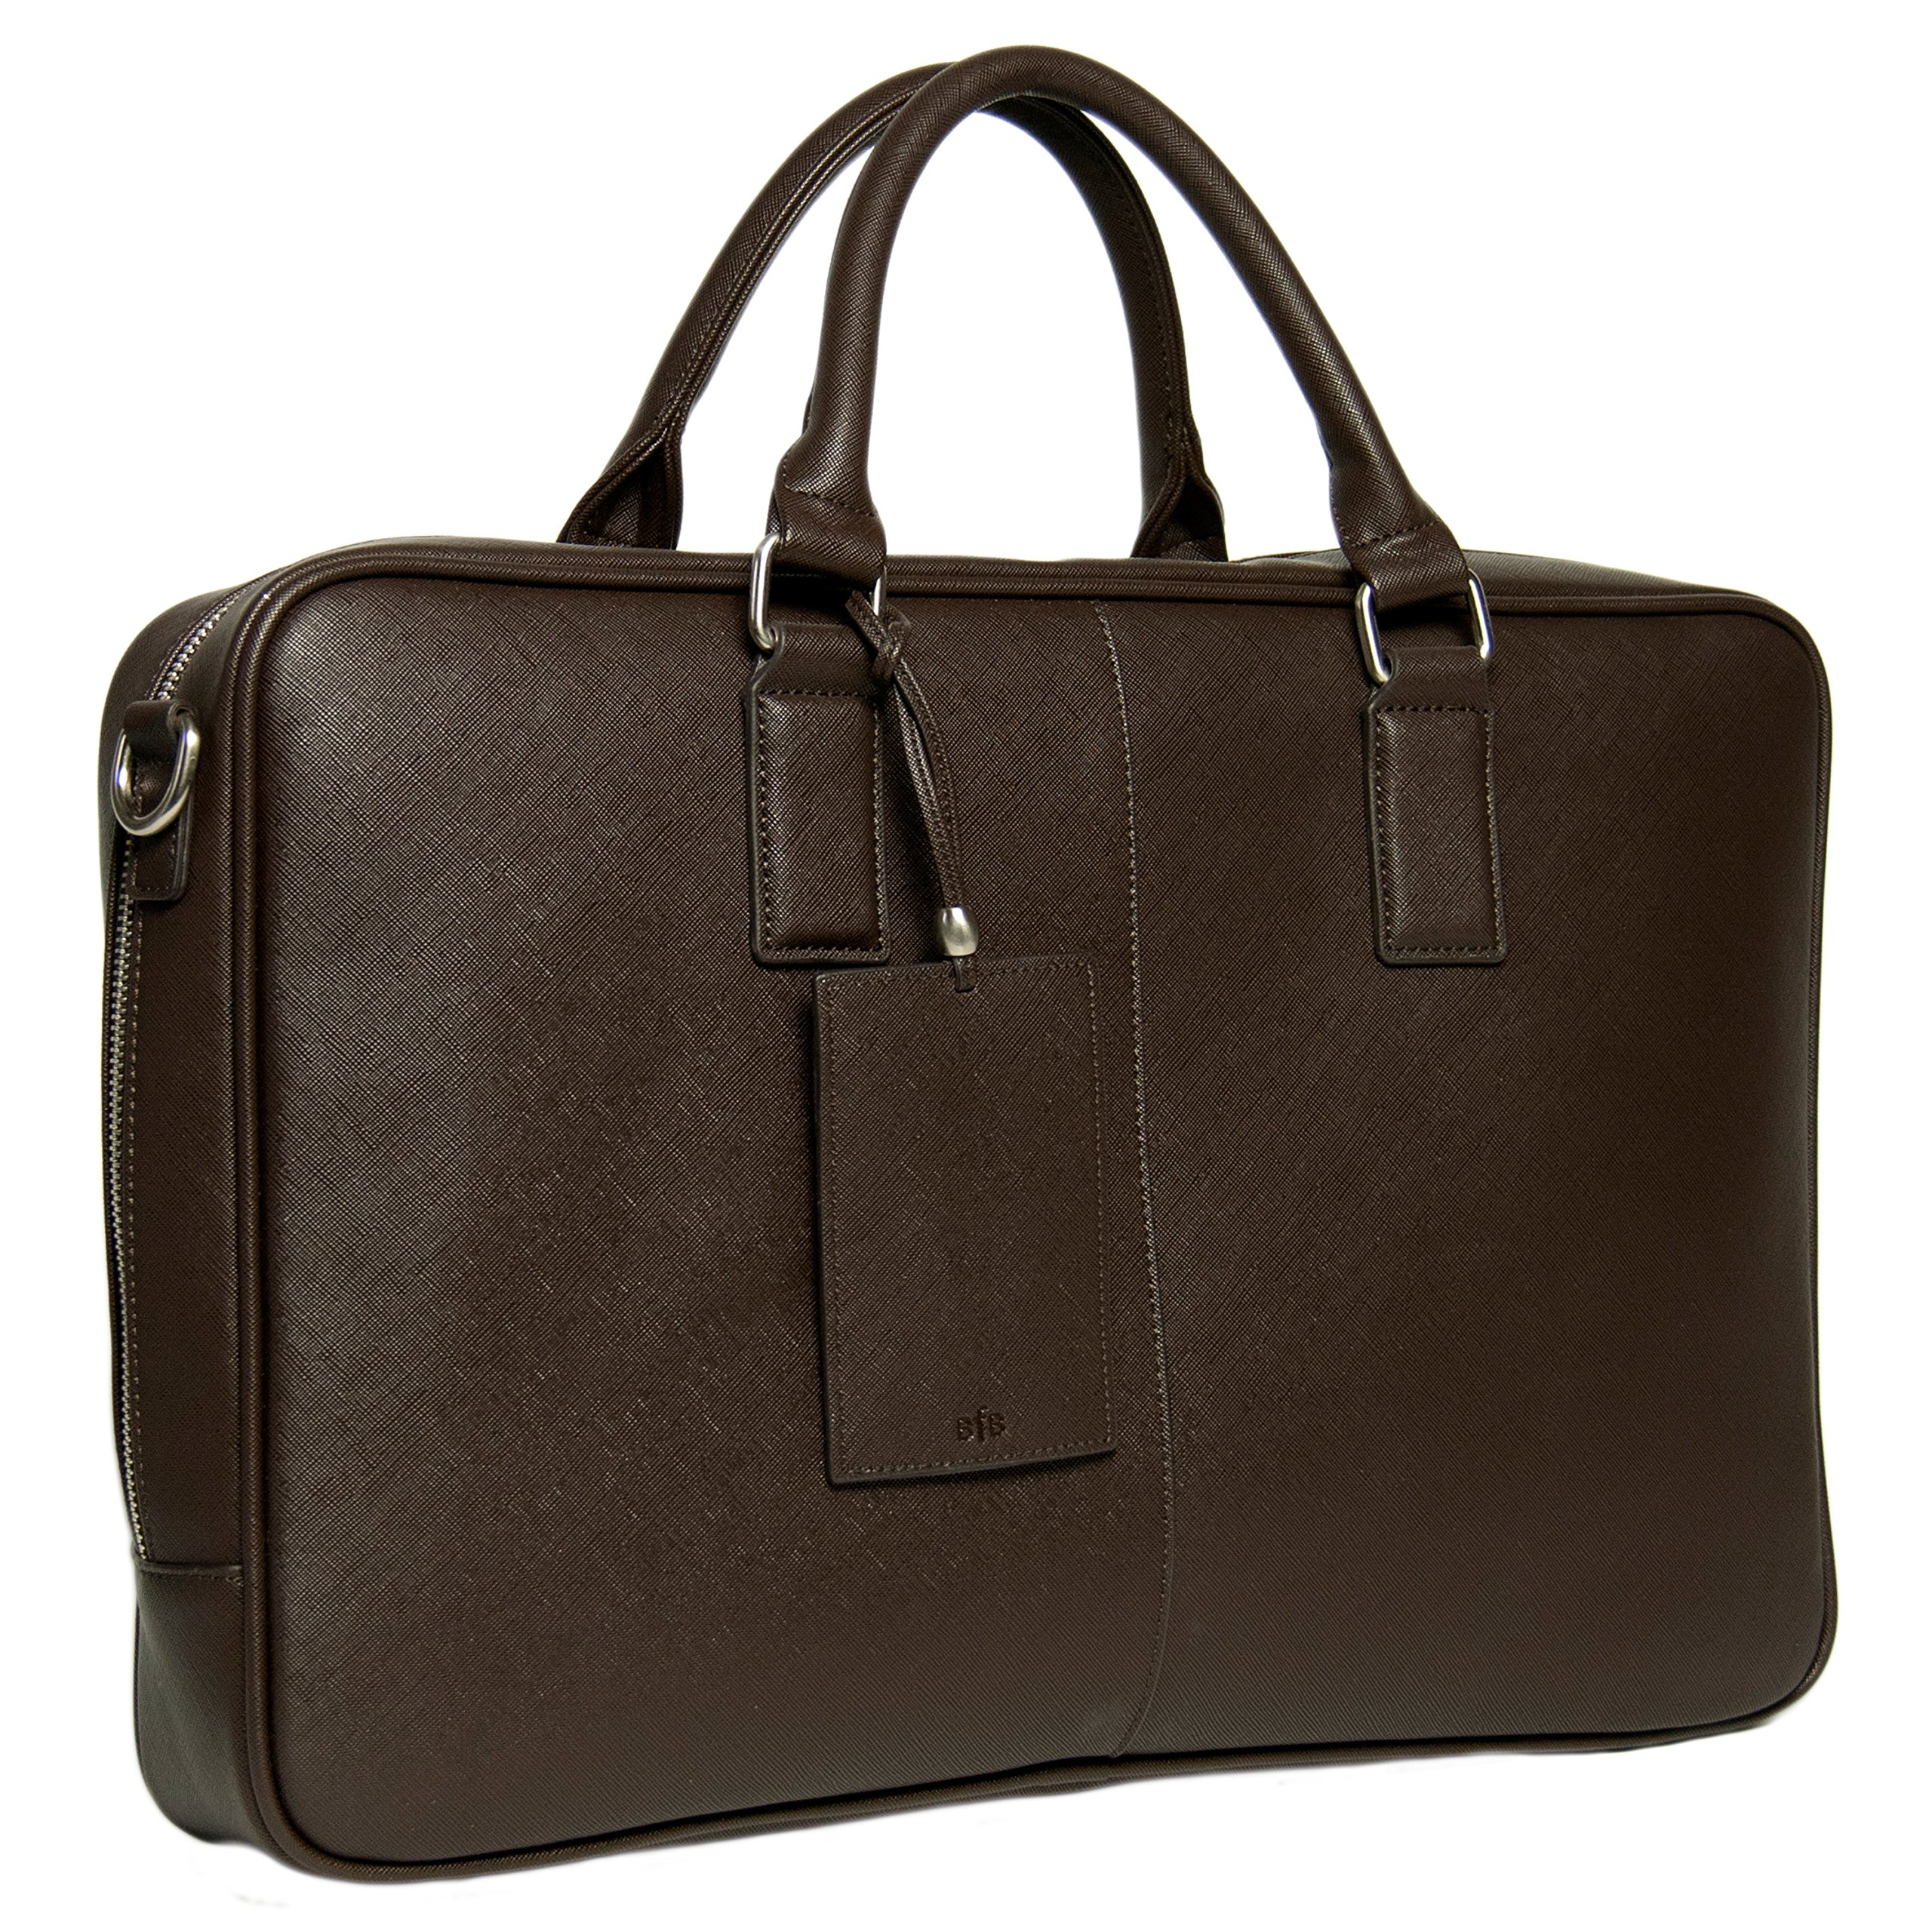 BfB Laptop Messenger Bag For Men - Designer Business Computer Bag Or Attorney Briefcase - Ideal Commuter Bag For Work And Travel - CHOCOLATE BROWN by My Best Friend is a Bag (Image #2)